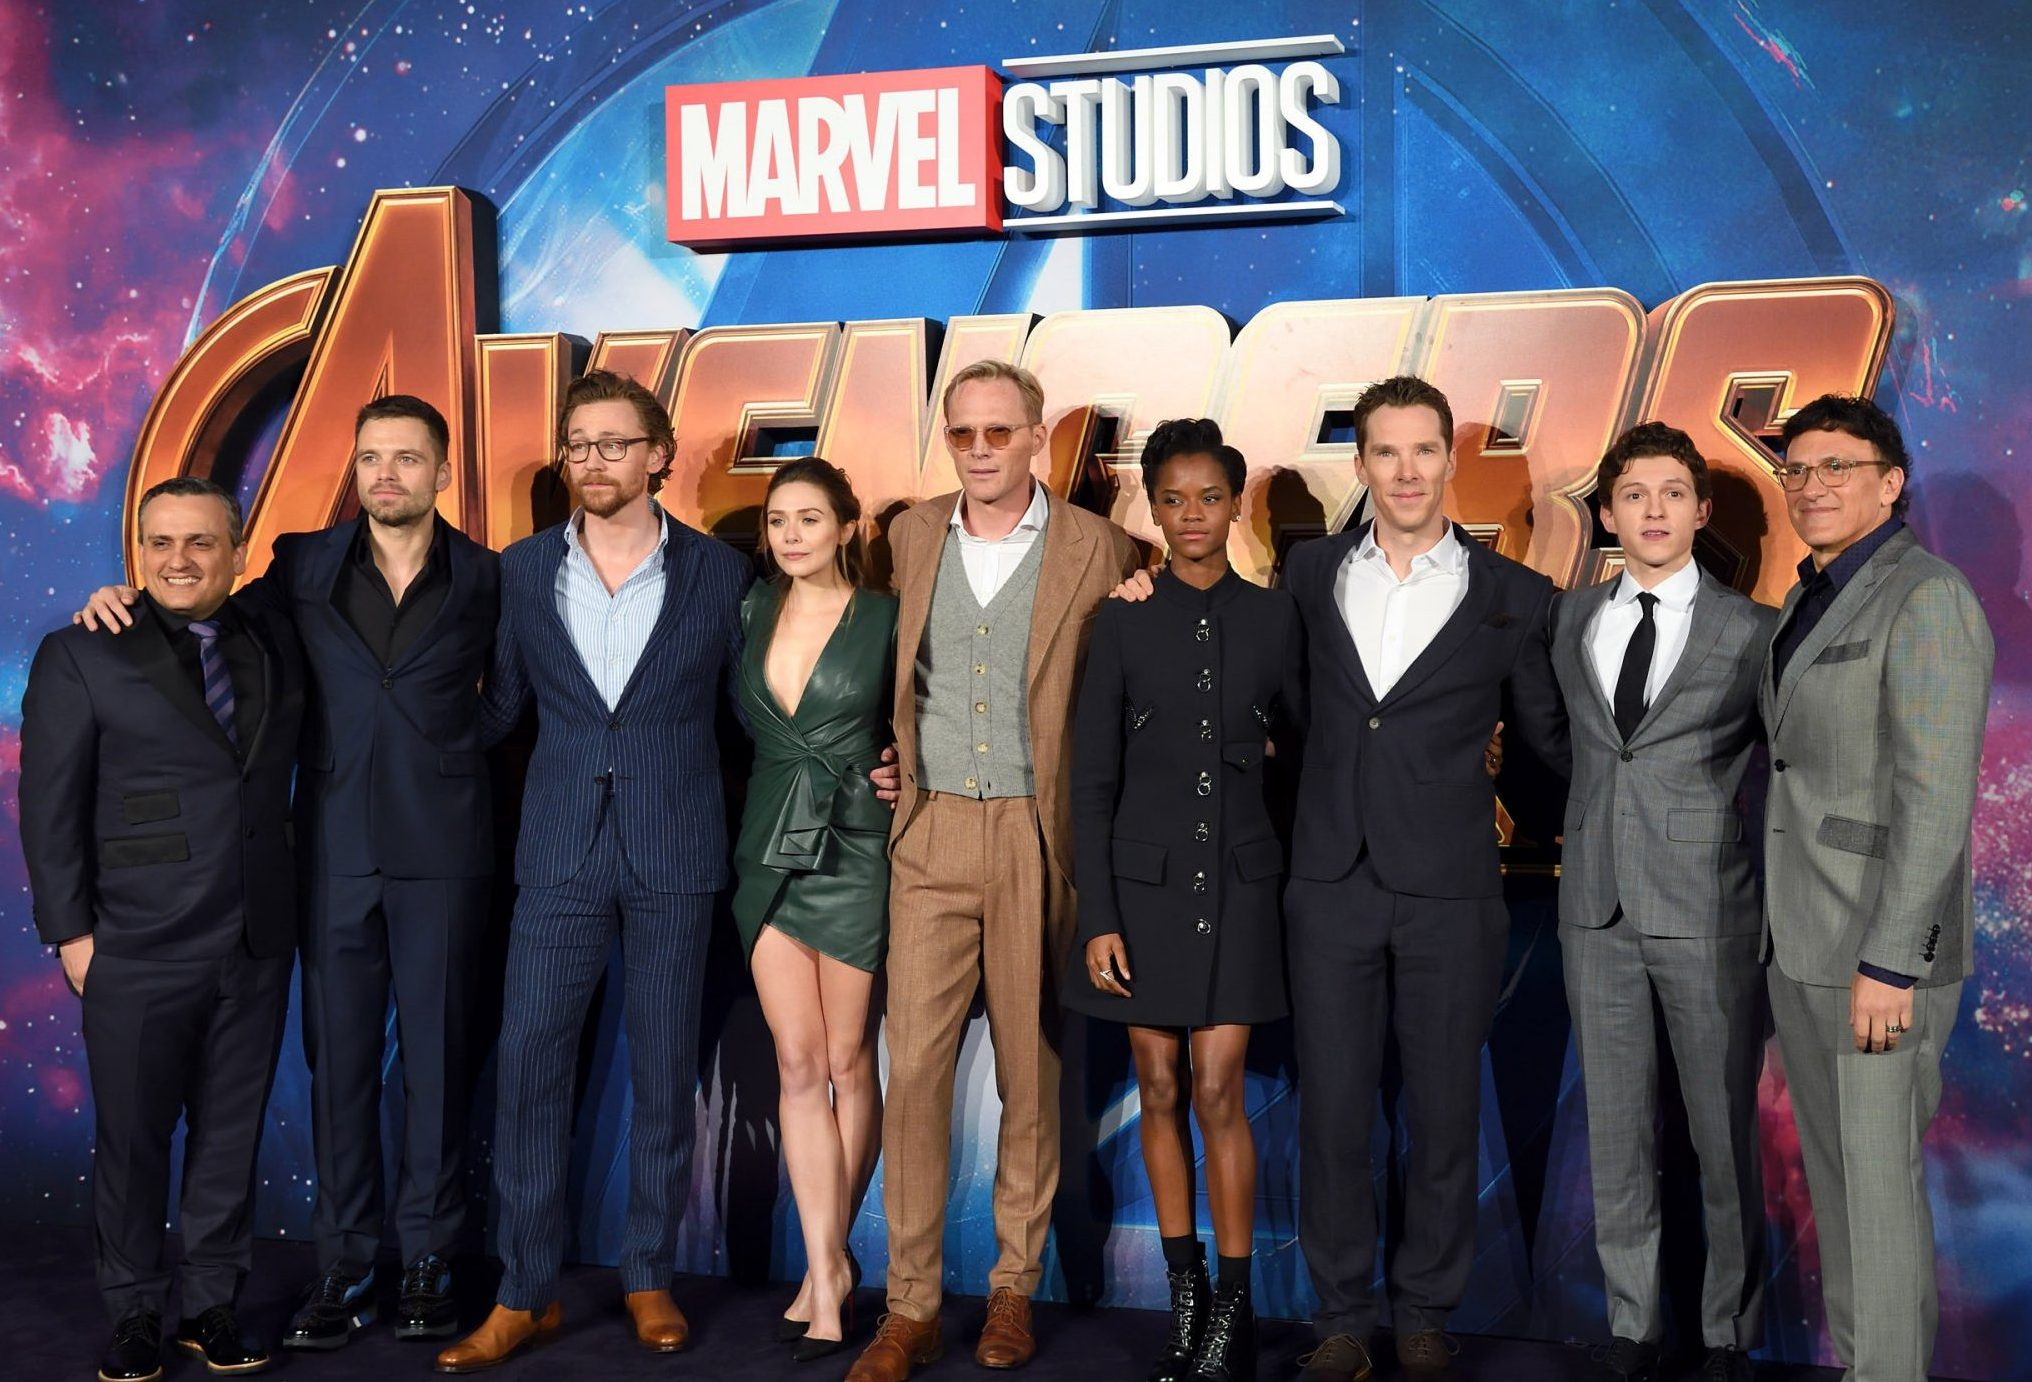 """LONDON, ENGLAND - APRIL 08: (L-R) Joe Russo, Sebastian Stan, Tom Hiddleston, Elizabeth Olsen, Paul Bettany, Letitia Wright, Benedict Cumberbatch, Tom Holland and Anthony Russo attend the UK Fan Event for """"Avengers Infinity War"""" at Television Studios White City on April 8, 2018 in London, England. (Photo by Karwai Tang/WireImage)"""